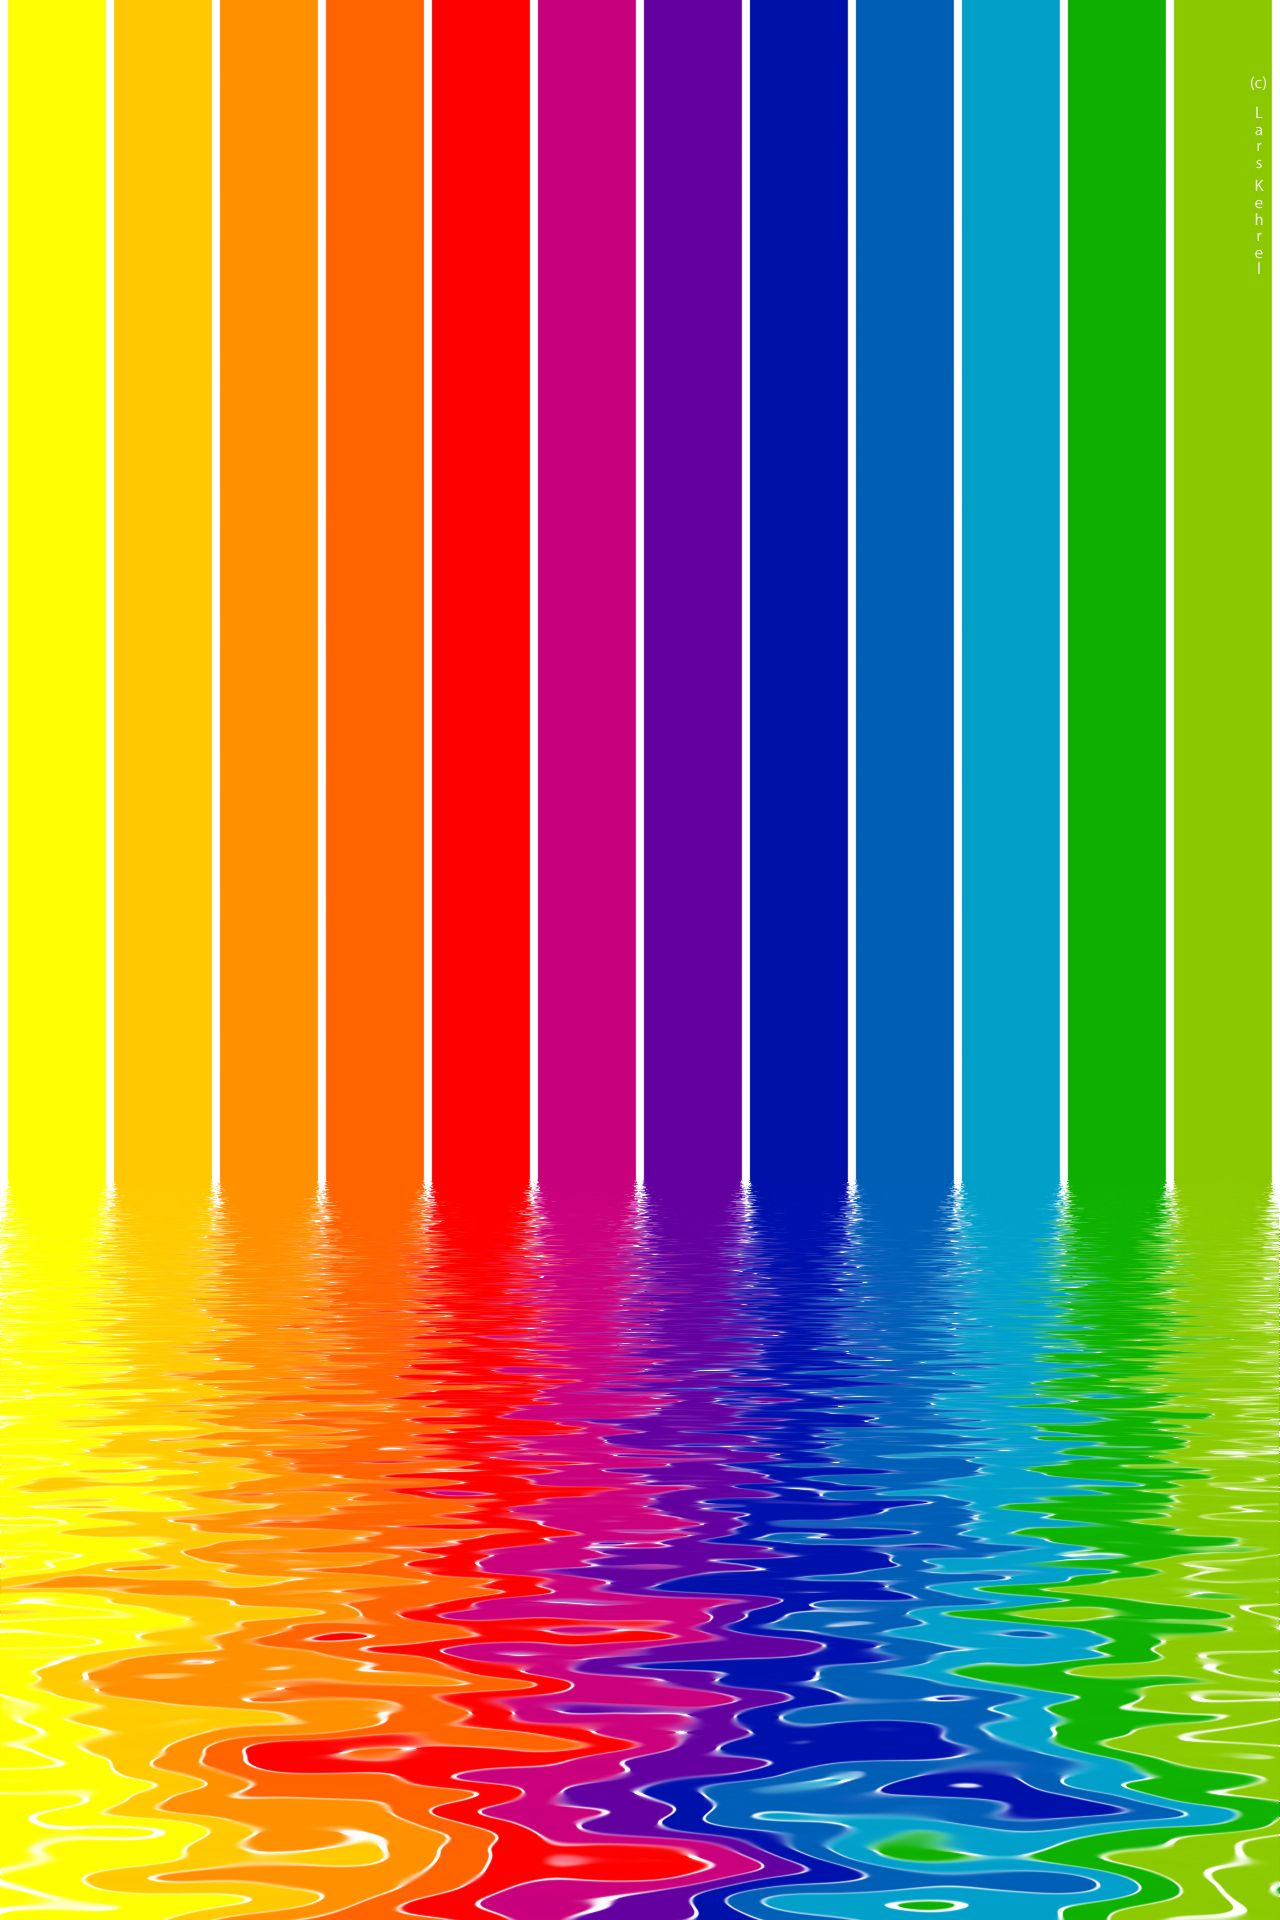 how color shapes our lives rainbows colored pencils and crayons